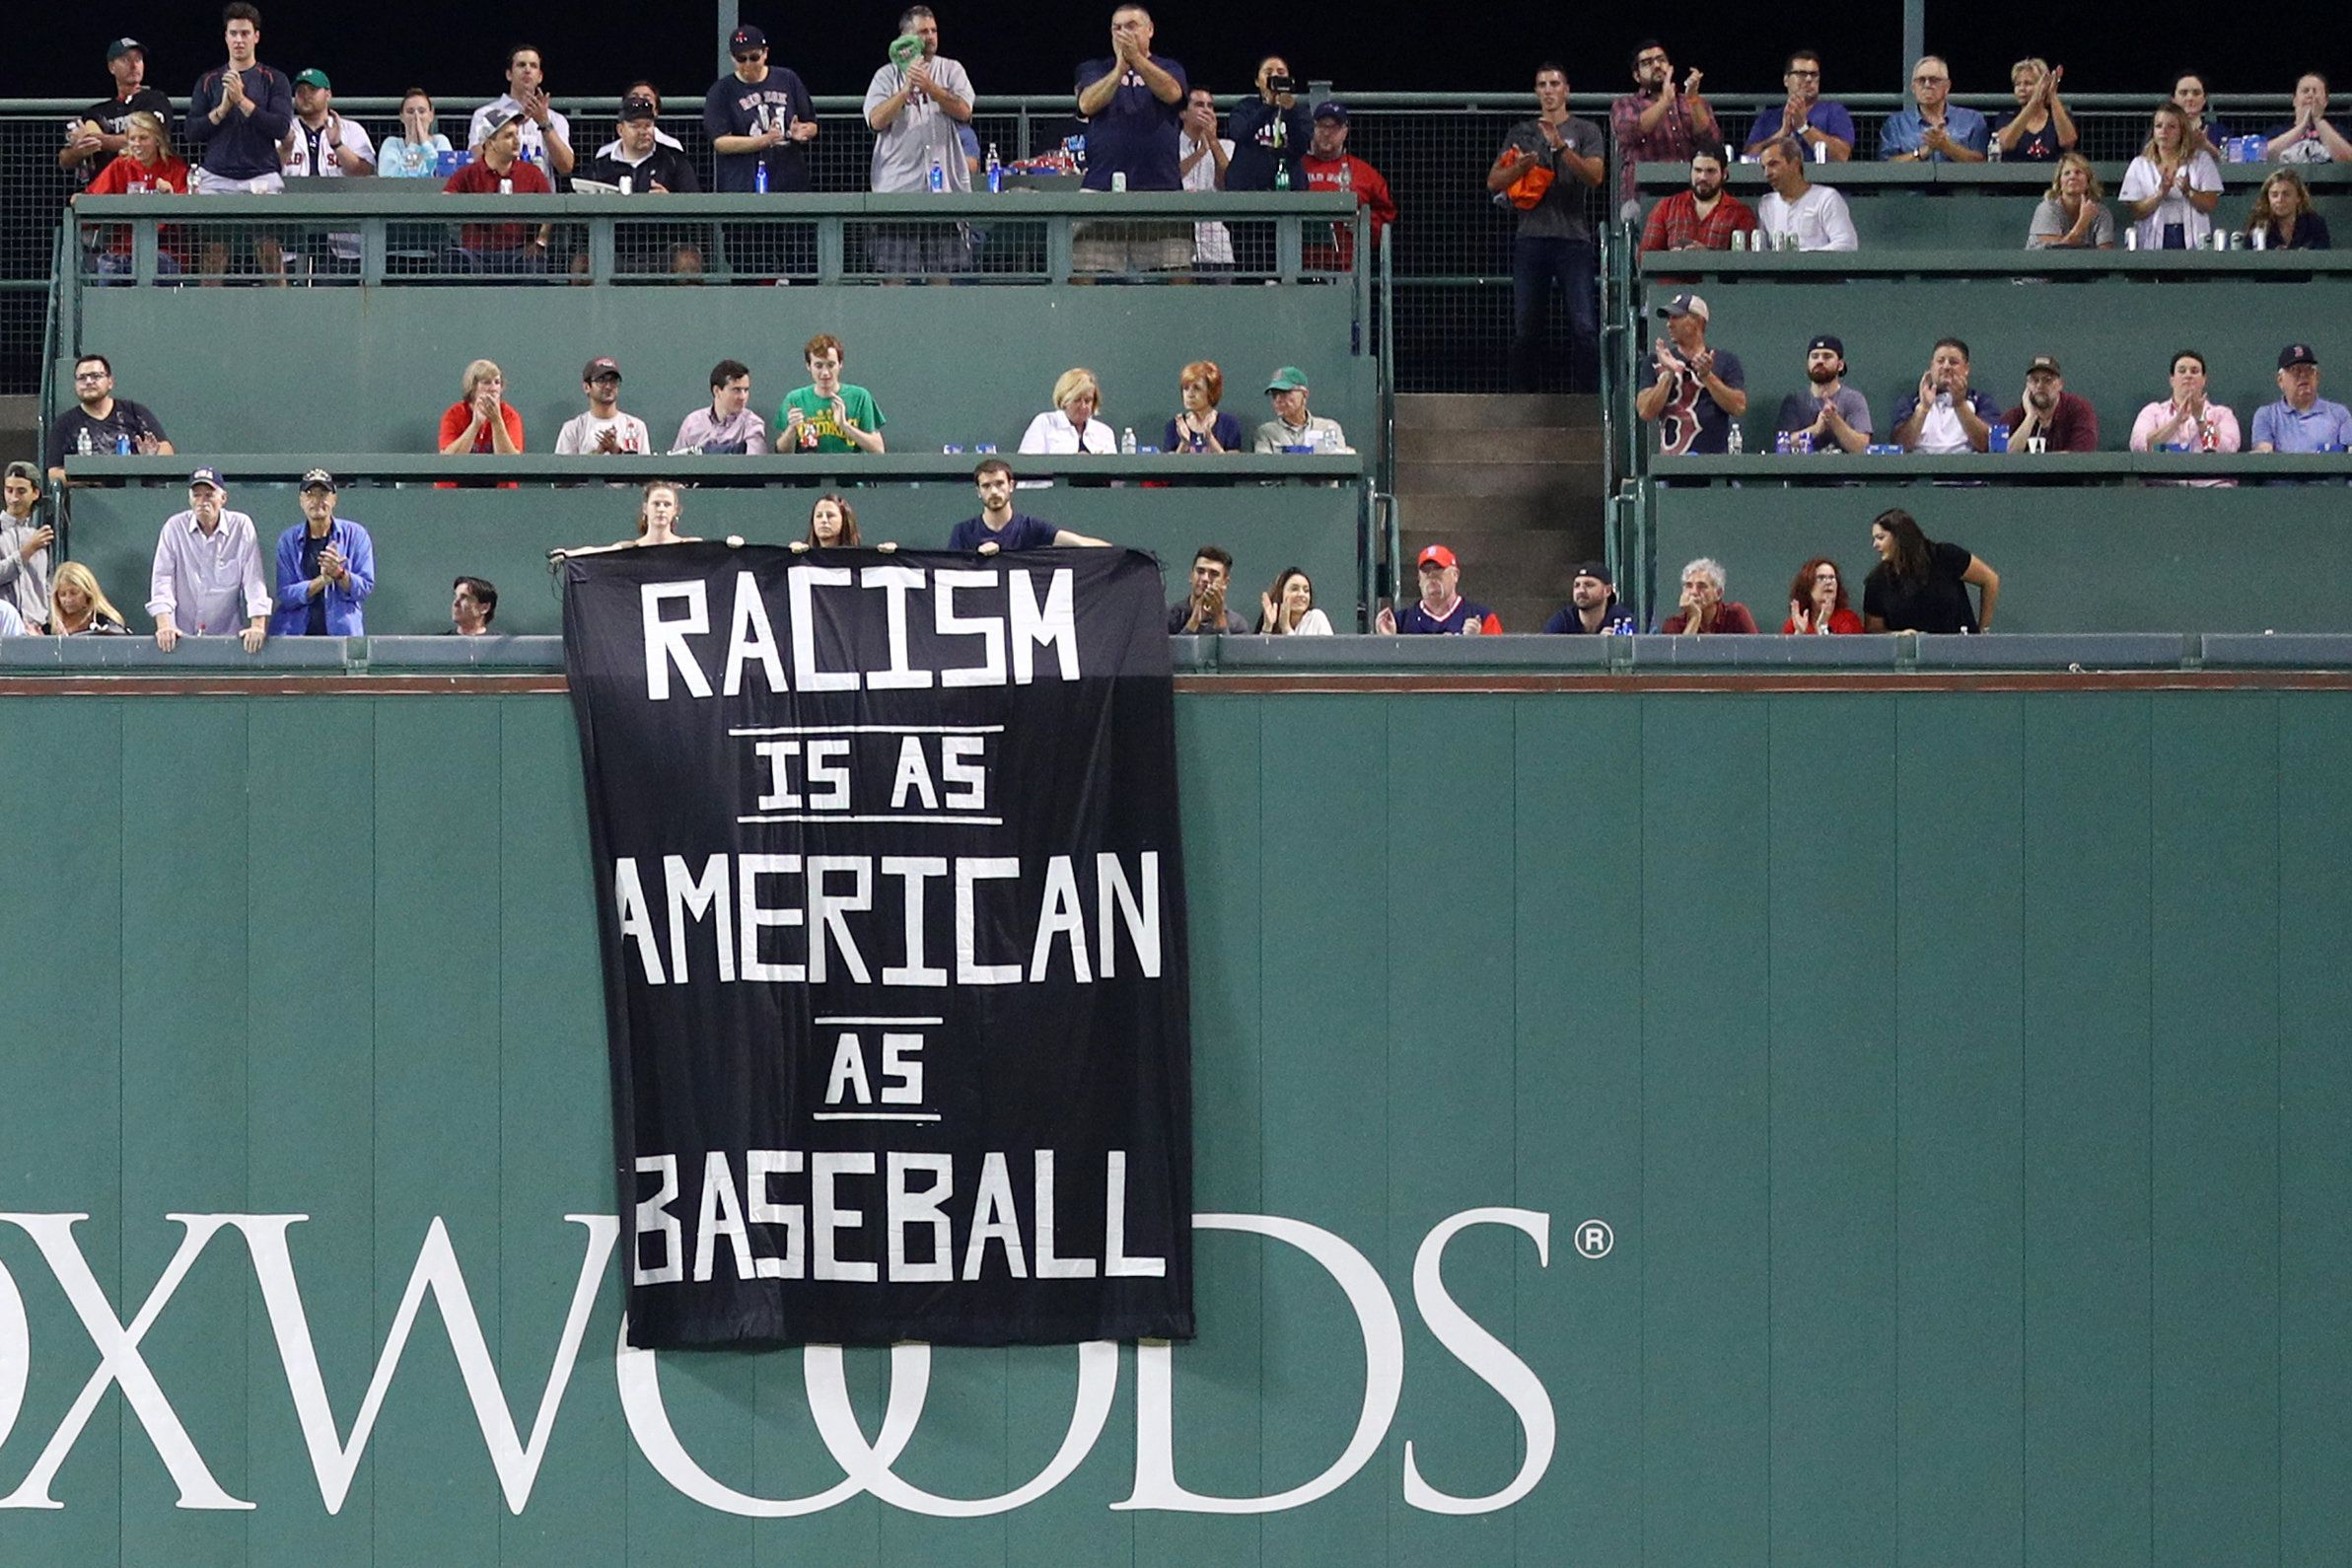 BOSTON, MA - SEPTEMBER 13: A banner with the message 'Racism is as American as baseball' is draped over the Green Monster during the fourth inning of the game between the Boston Red Sox and the Oakland Athletics at Fenway Park on September 13, 2017 in Boston, Massachusetts. (Photo by Maddie Meyer/Getty Images)